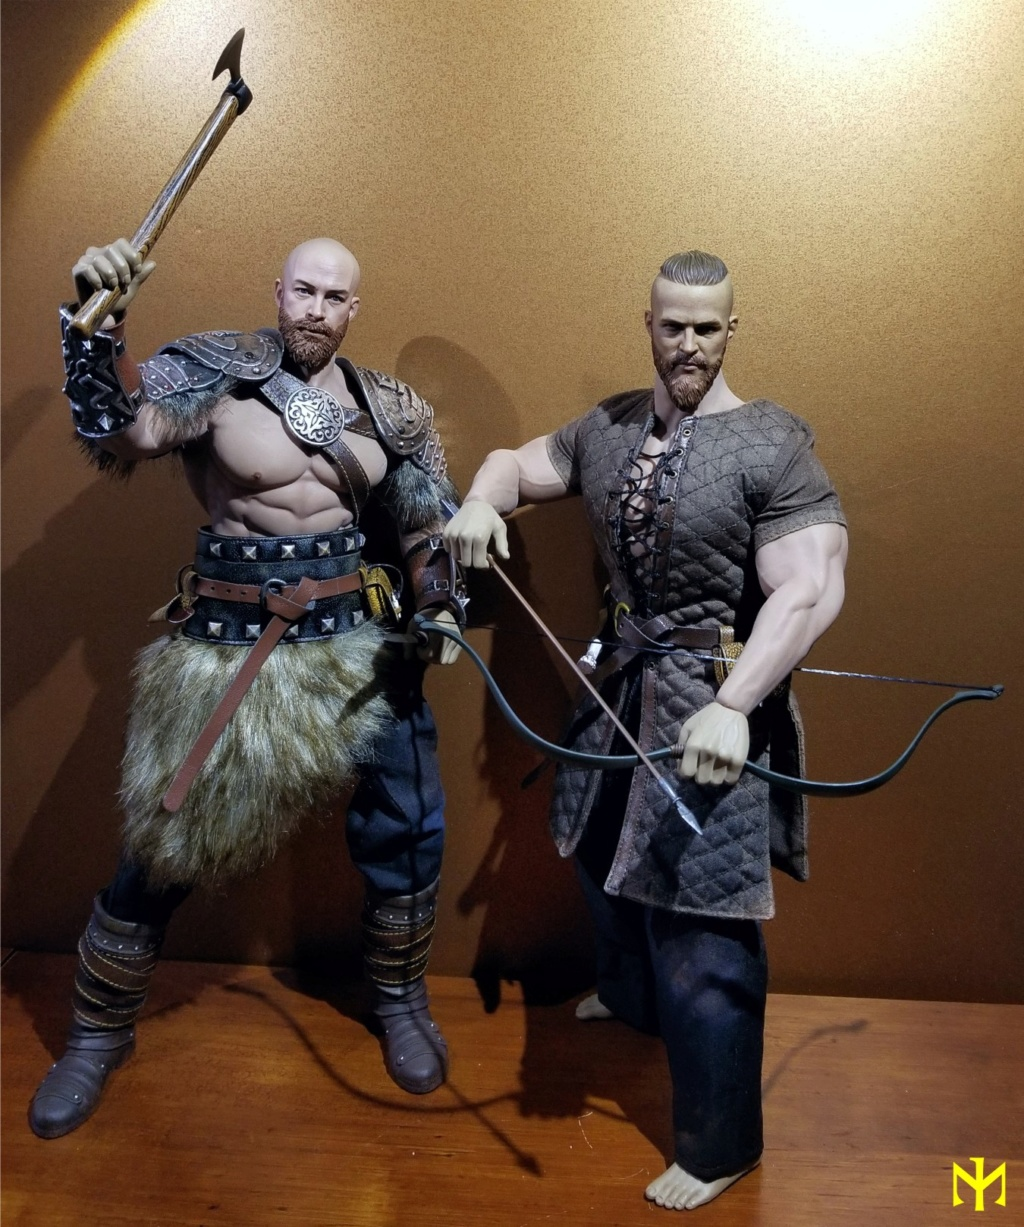 Conanesque: A Fantasy Warrior Kitbash (update 5: February 2020) Viking47